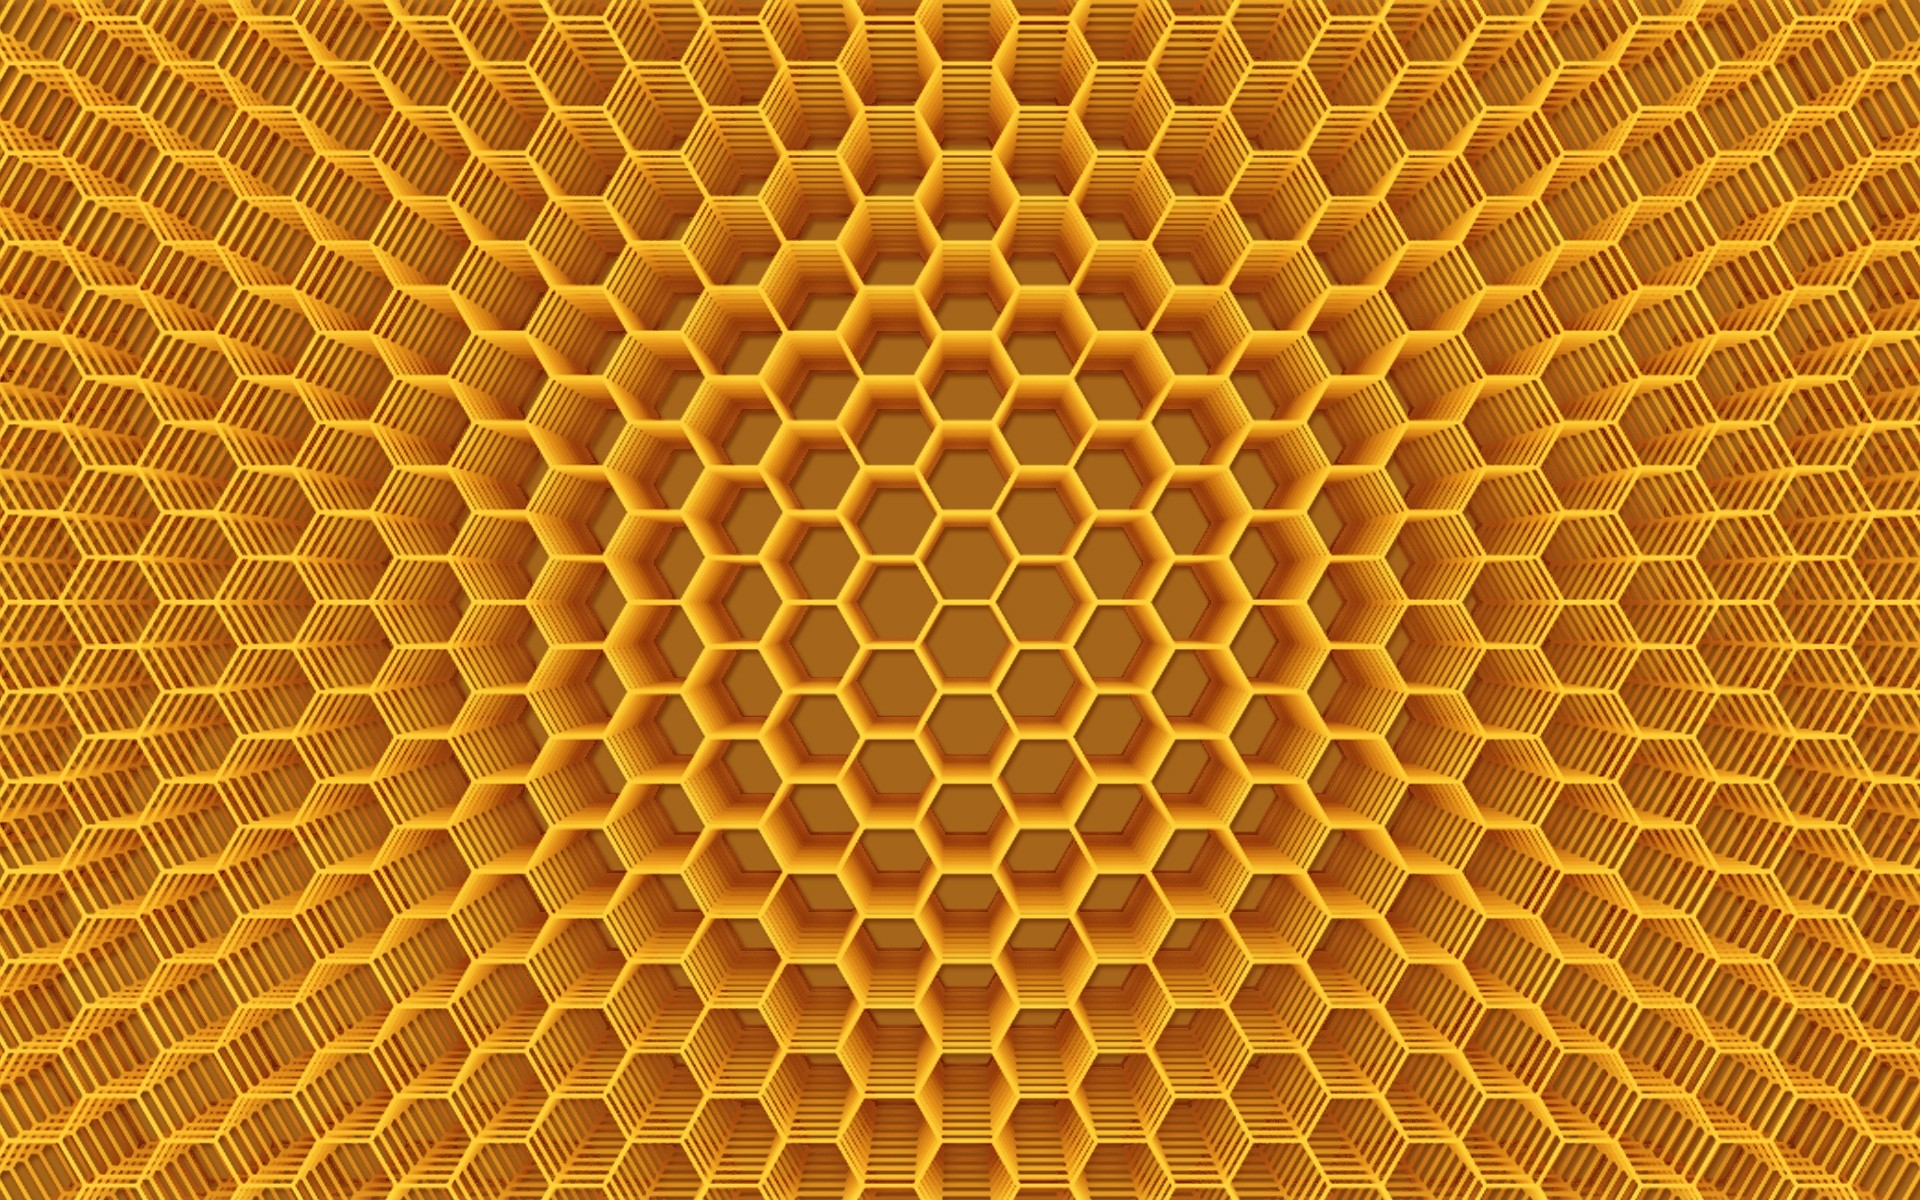 Hexagon Wallpaper 3d Abstract Honeycomb Structure Android Wallpapers For Free